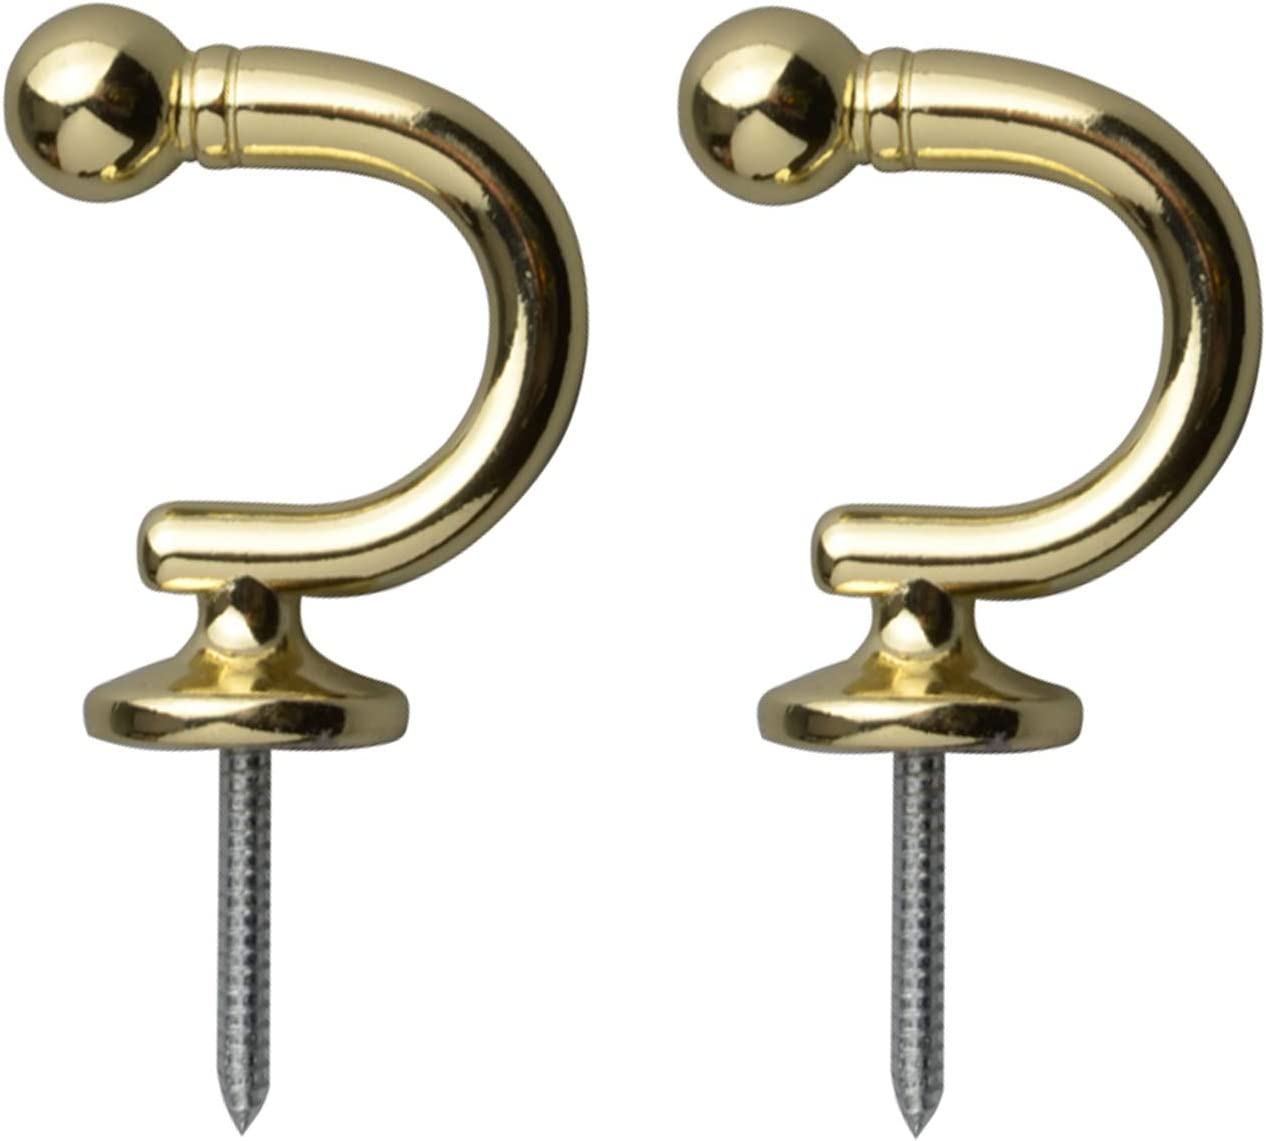 Direct sale of manufacturer Round Head Curtain Hooks Wall Limited price sale Tassel Wind Mounted Tieback Holder